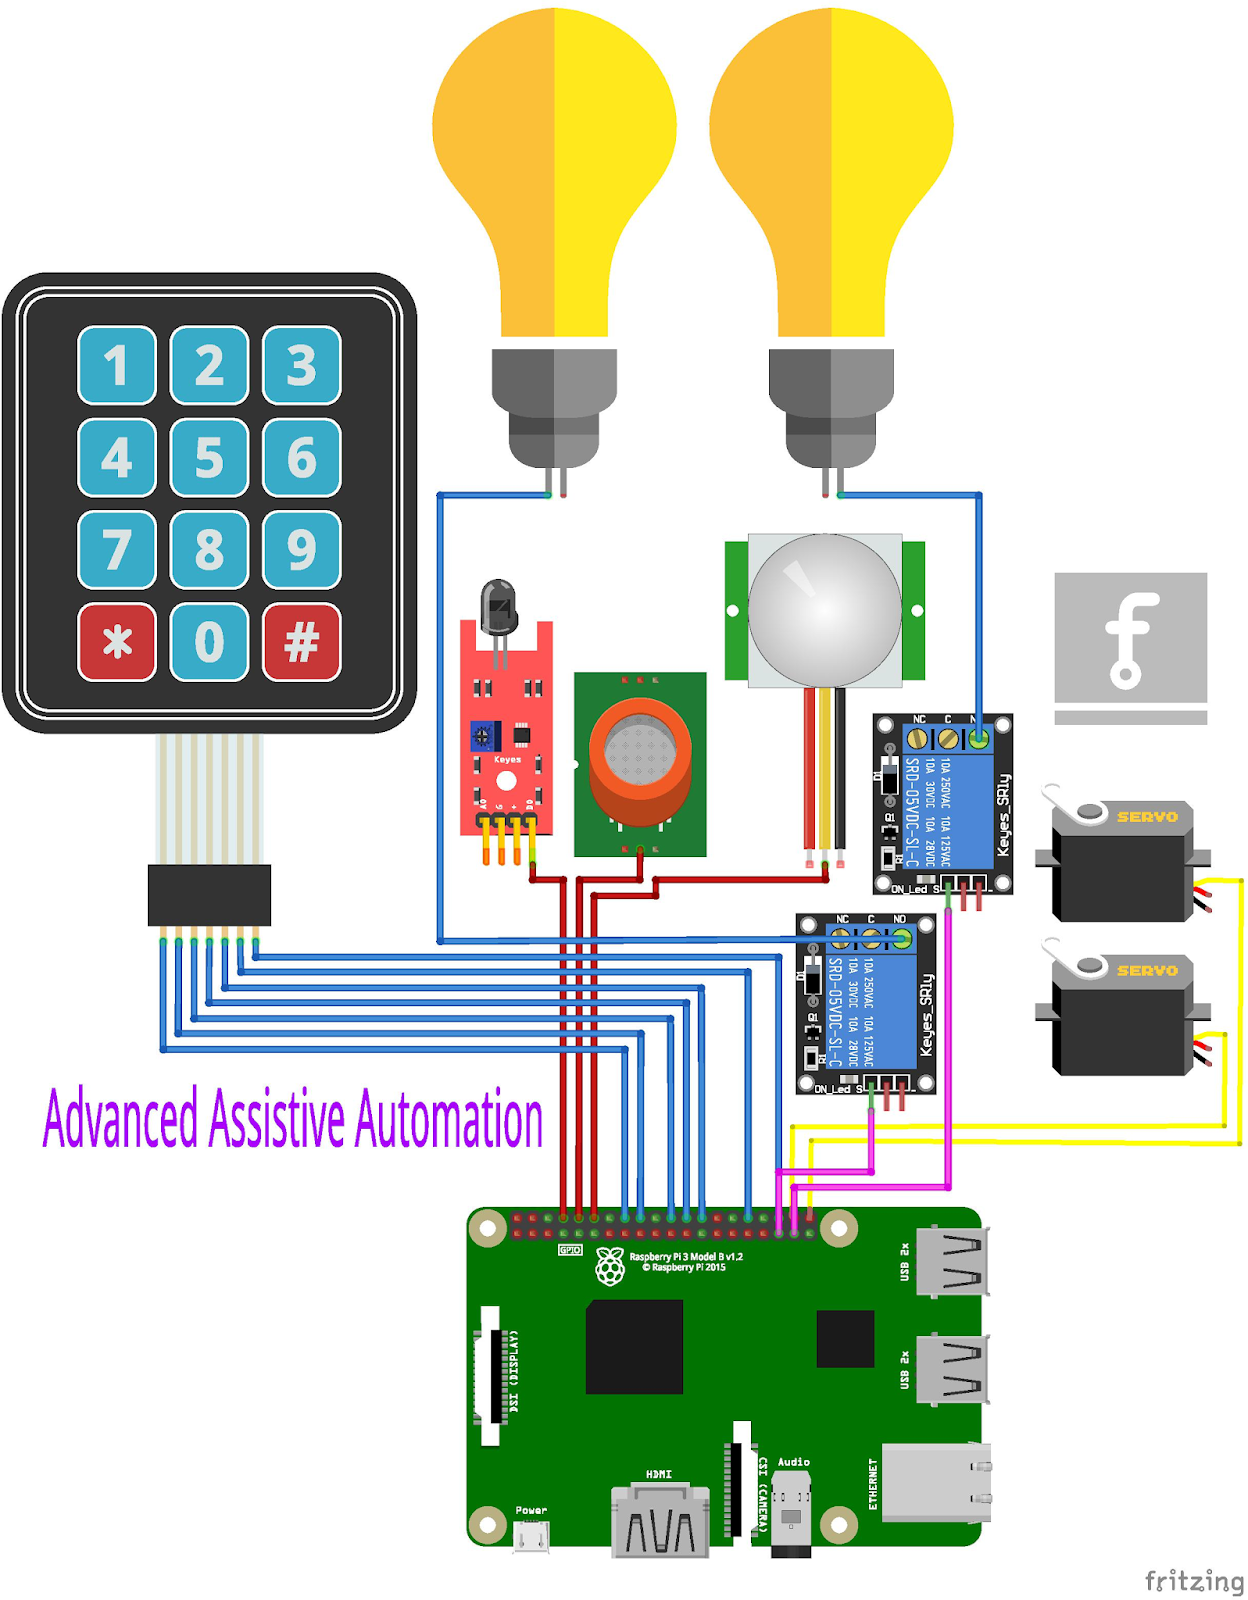 Advanced Home Automation with Voice Recognition